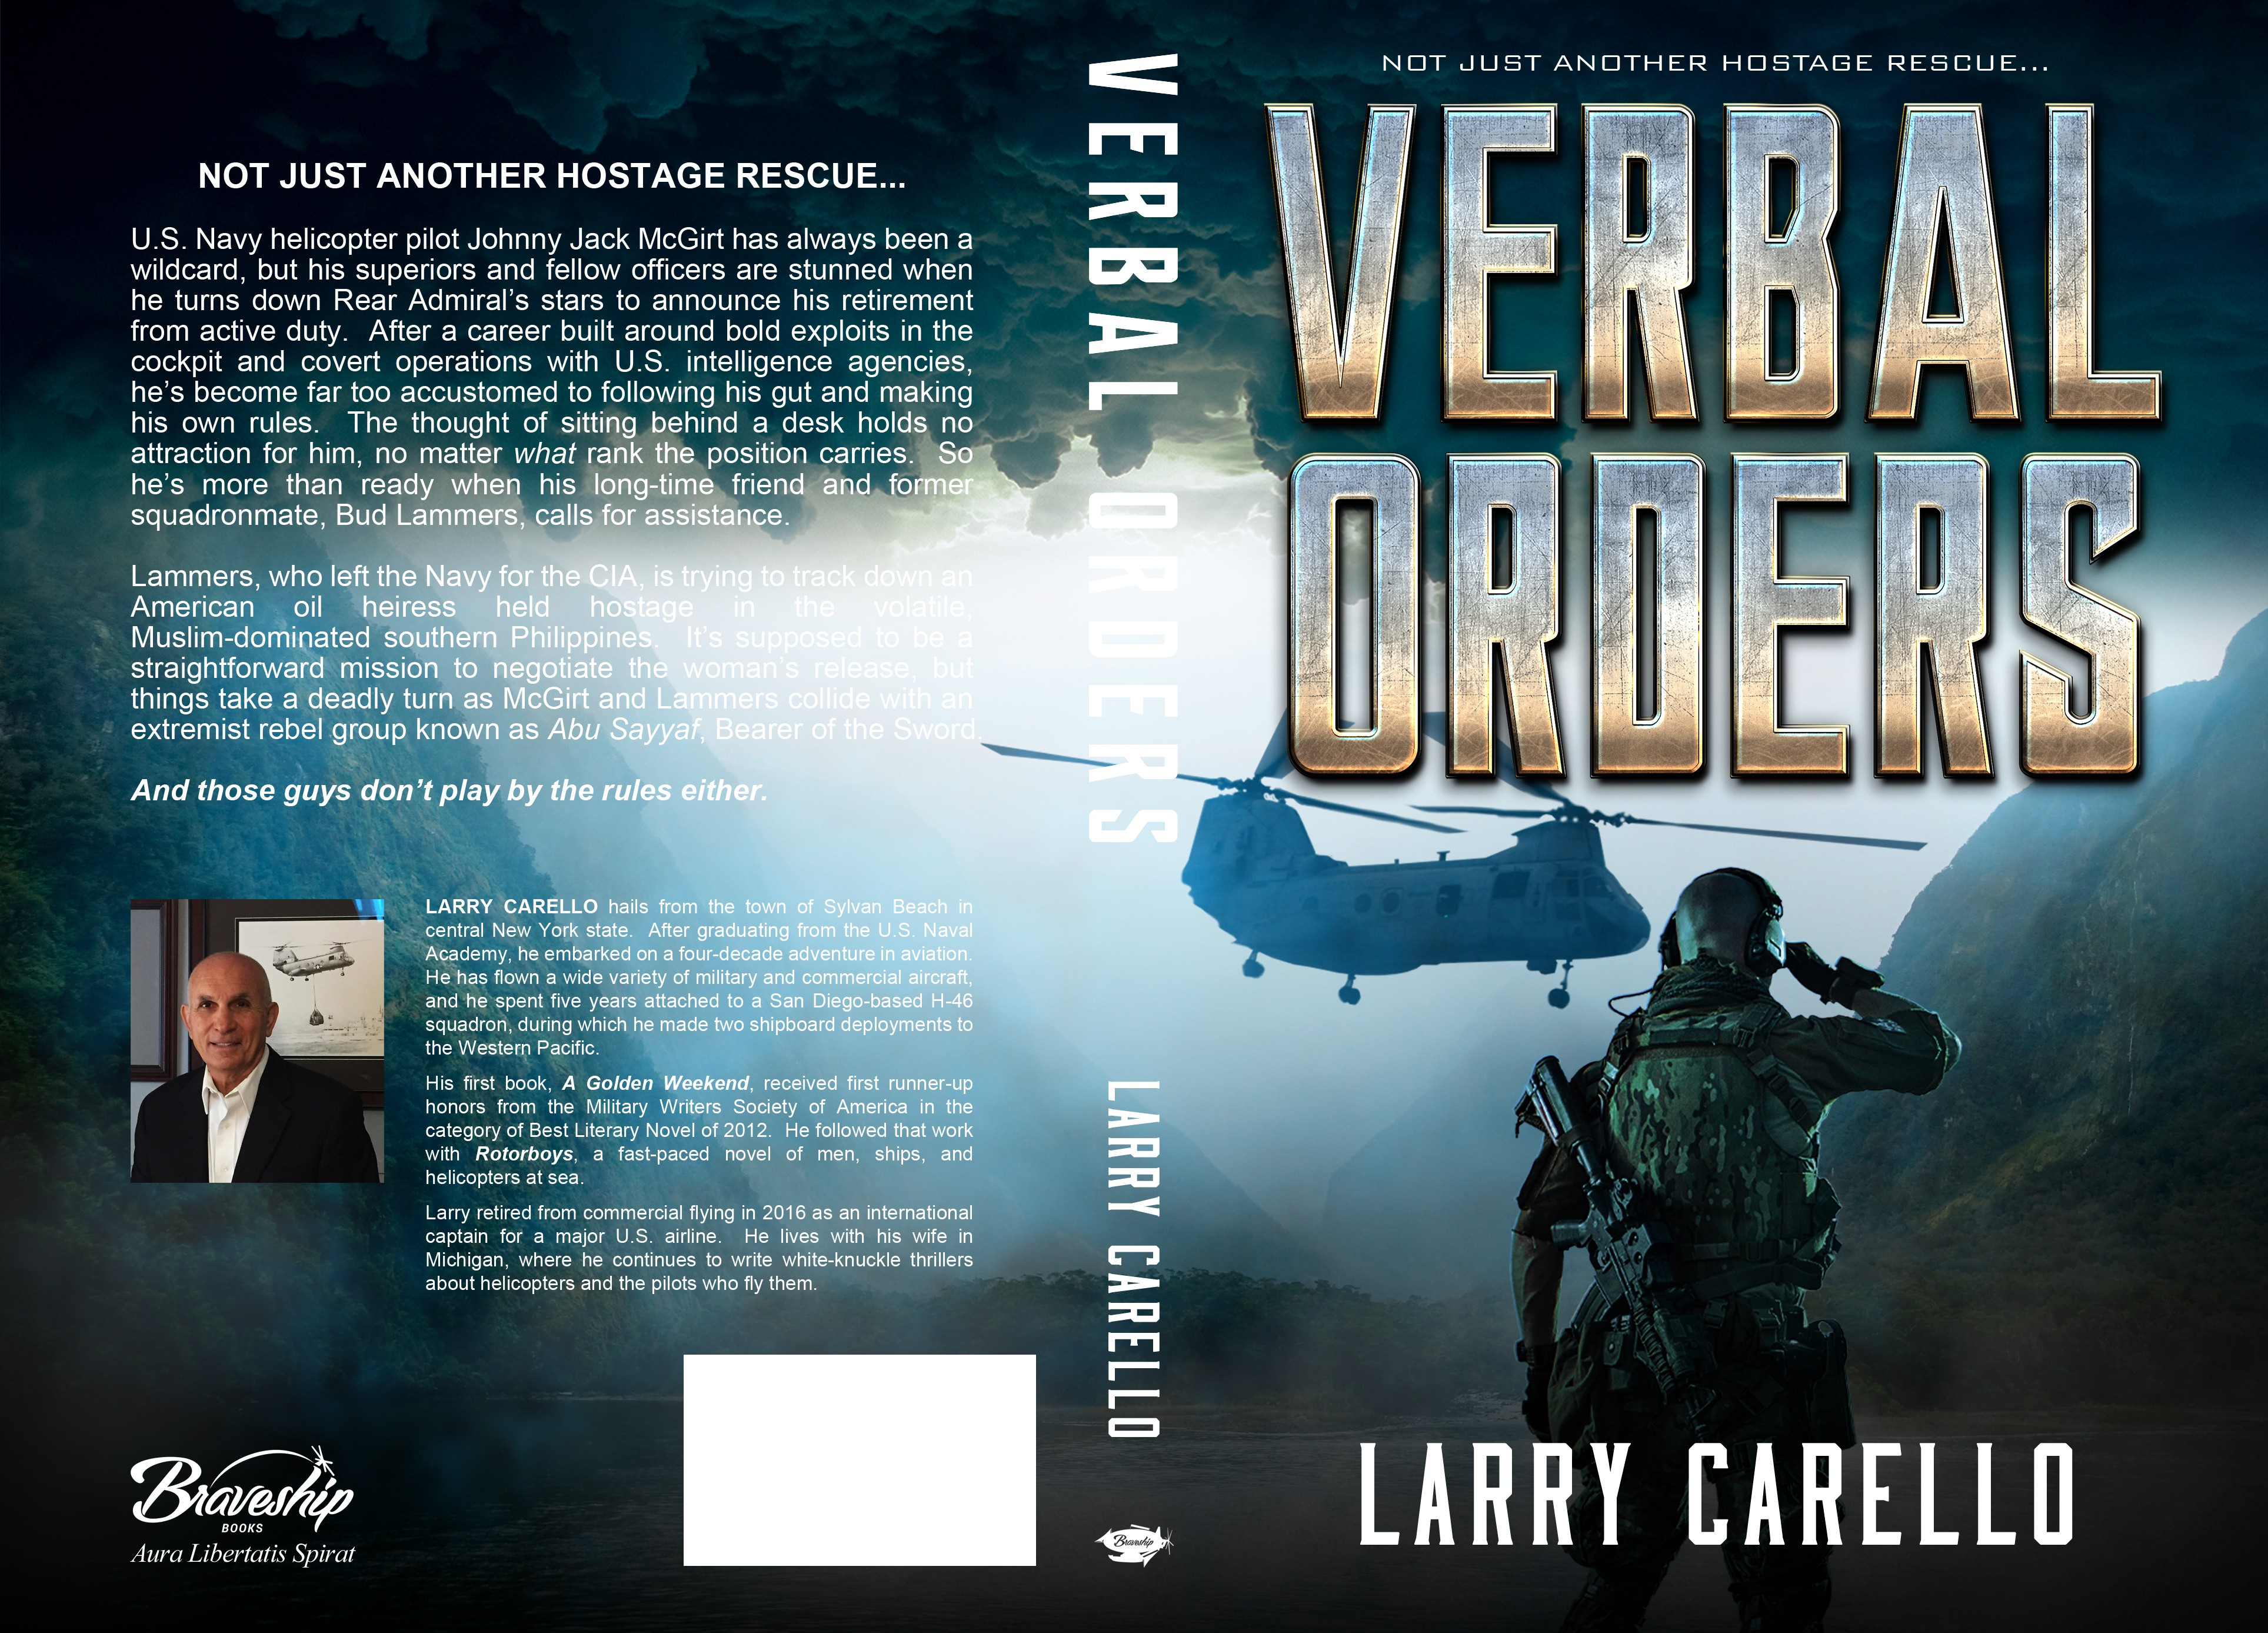 Create an exciting cover for a military thriller novel about U.S. Navy helicopter pilots.